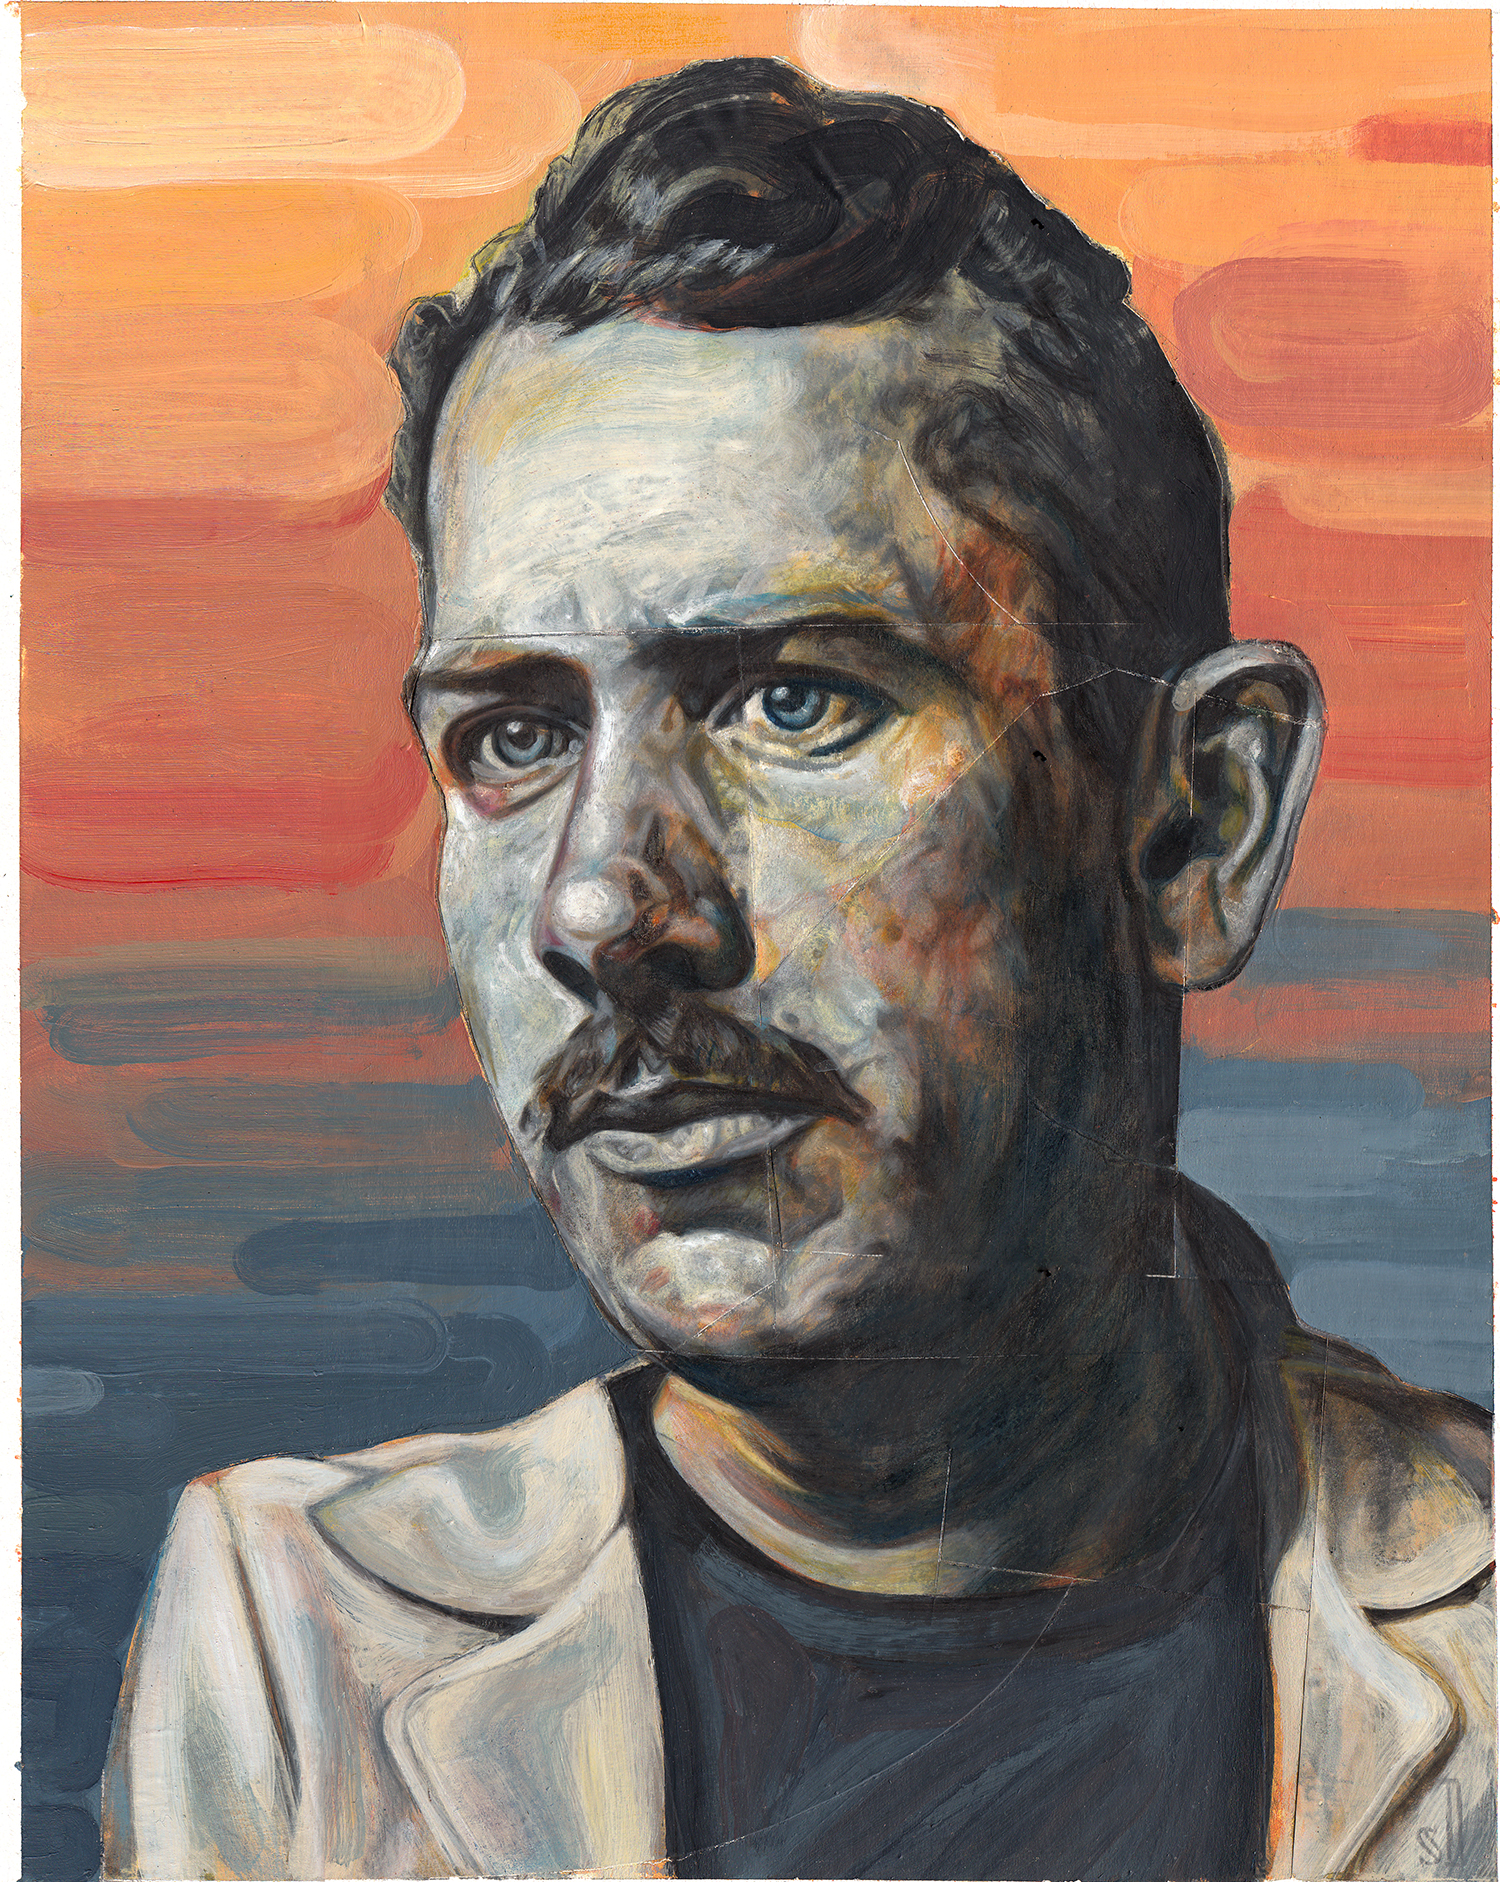 John Steinbeck / Private commission